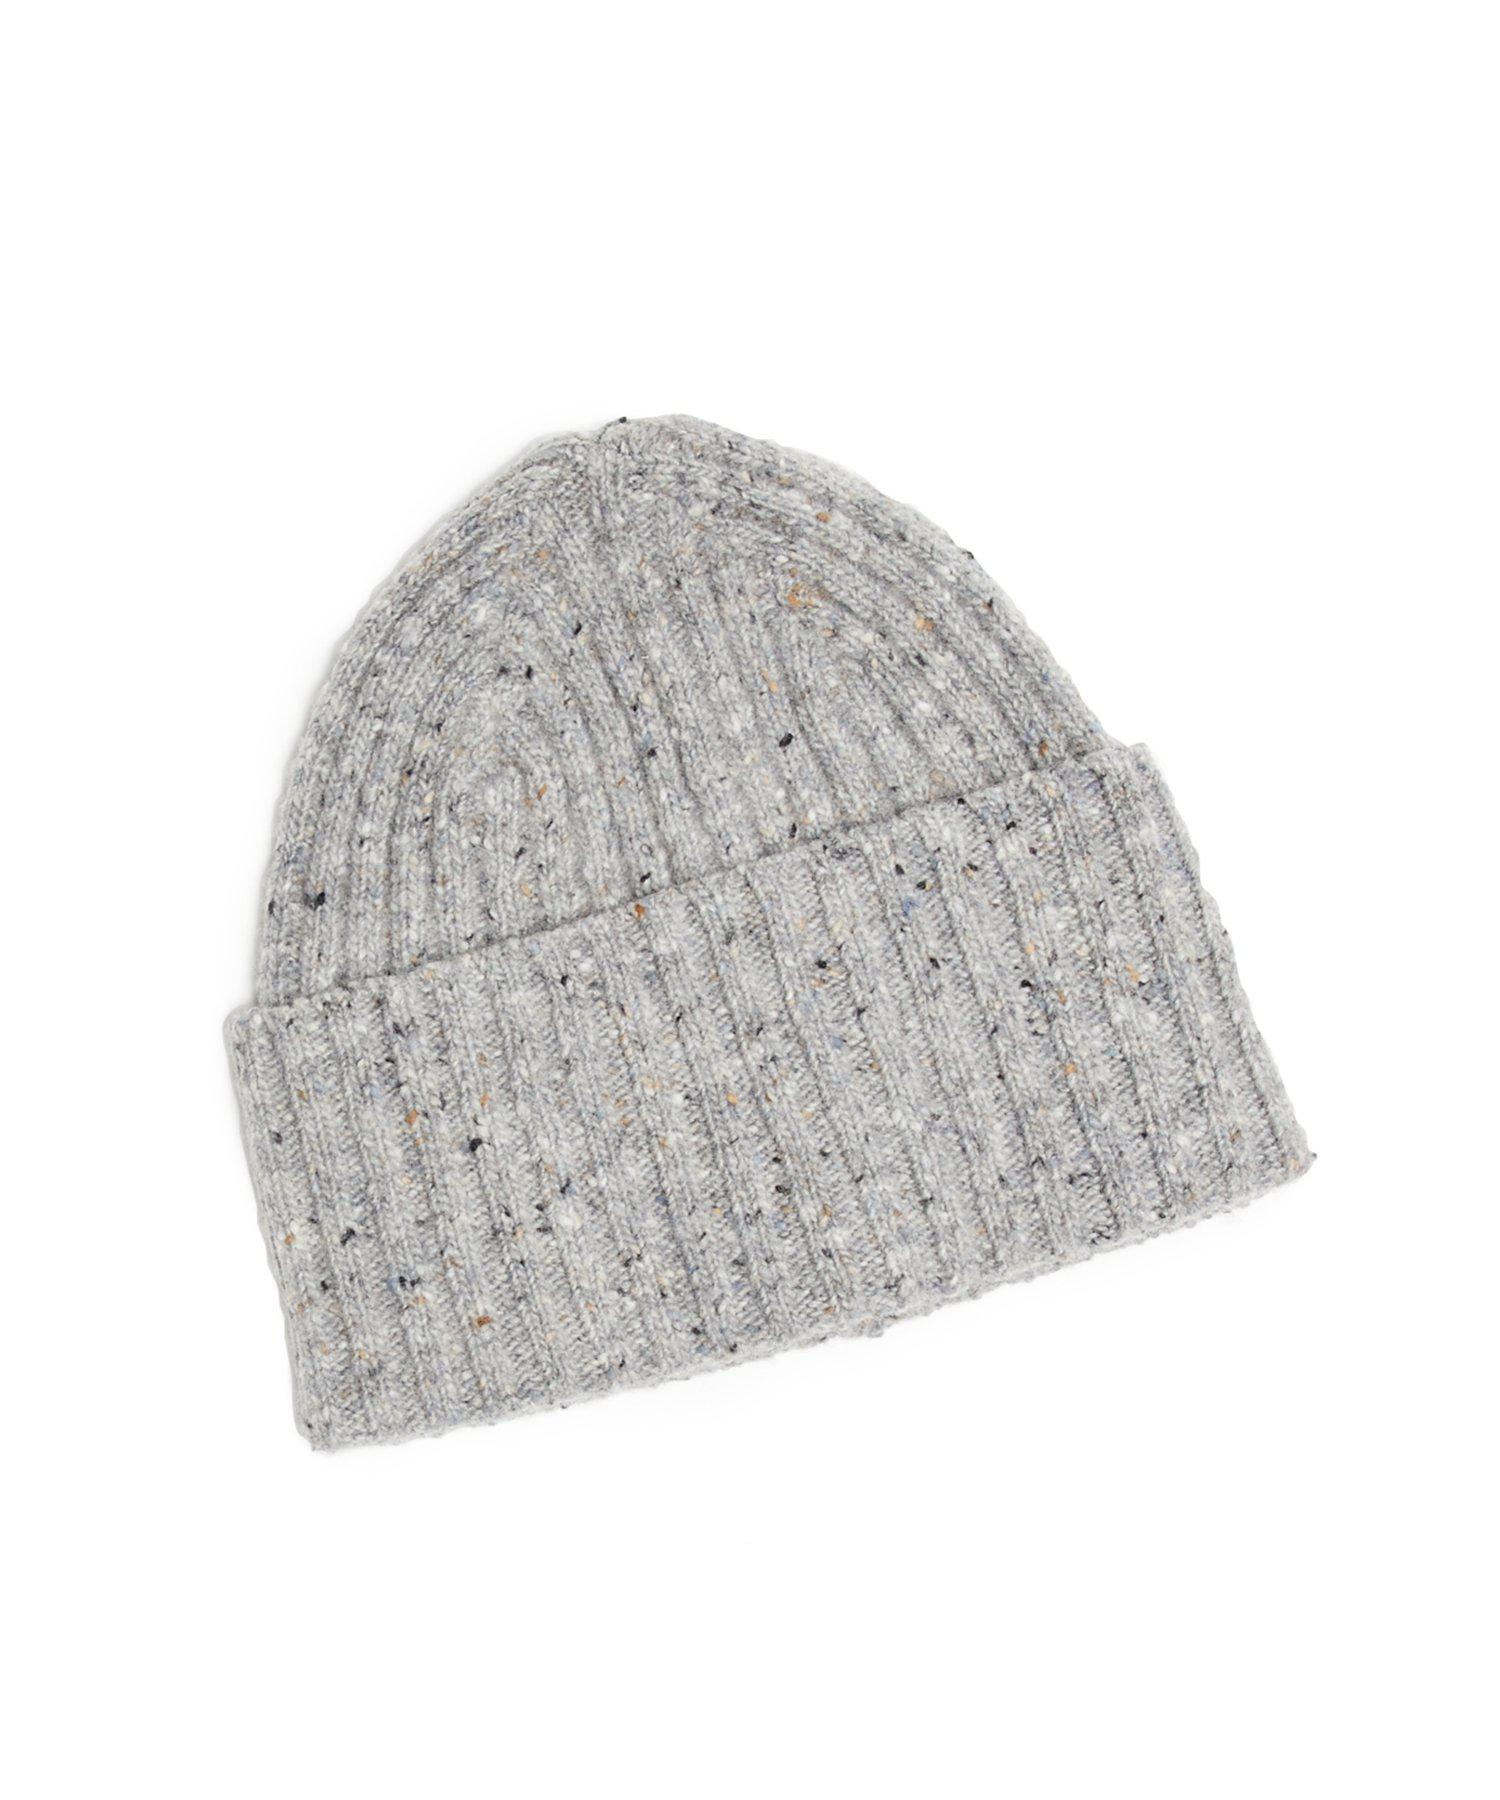 1a61eb7a6e9 Drake S Donegal Merino Hat In Light Grey in Gray for Men - Lyst